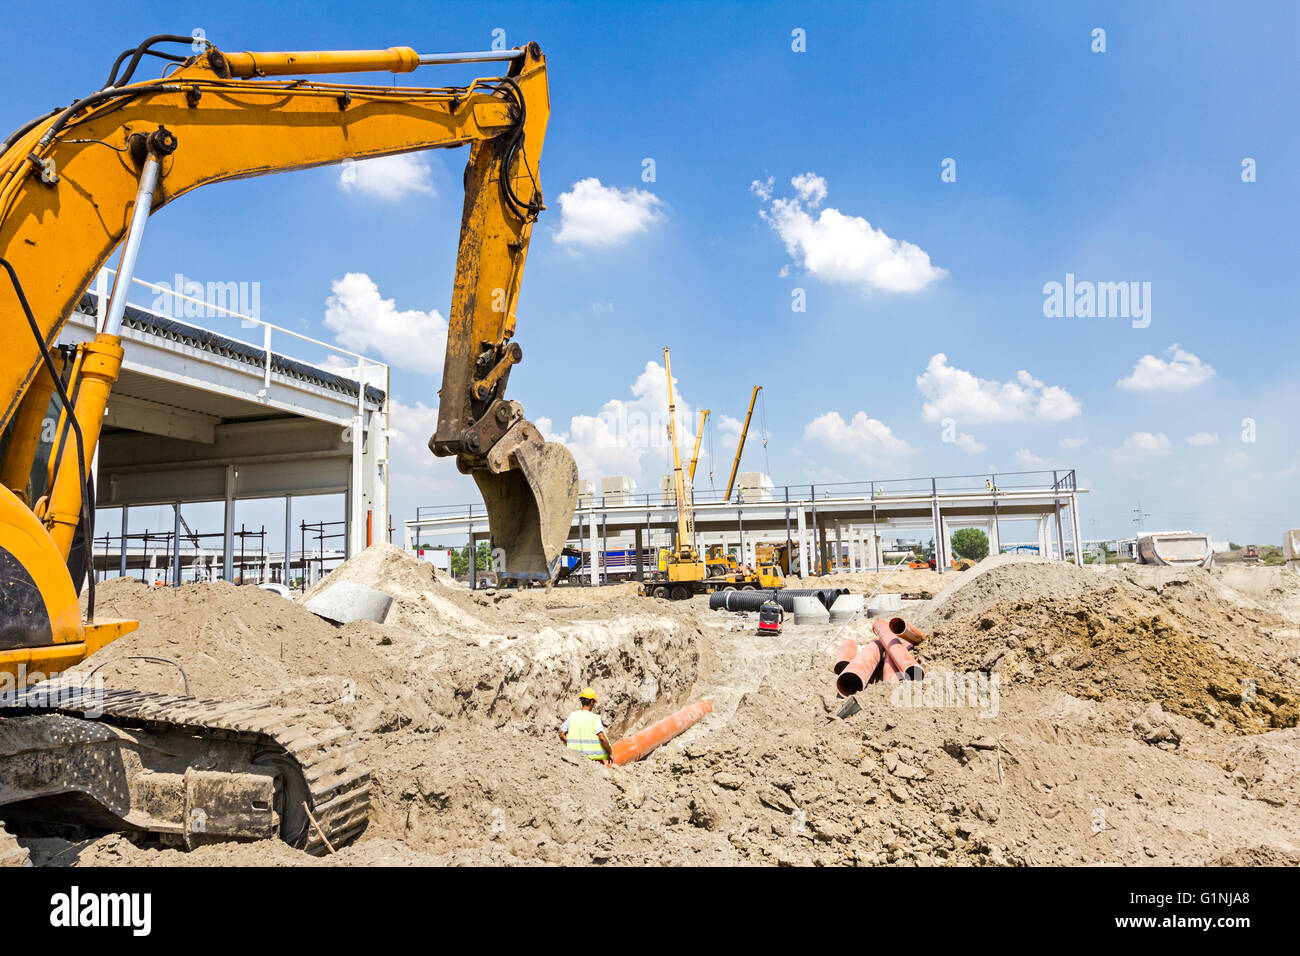 Landscape transform into urban area with machinery, people are working. View on construction site. - Stock Image